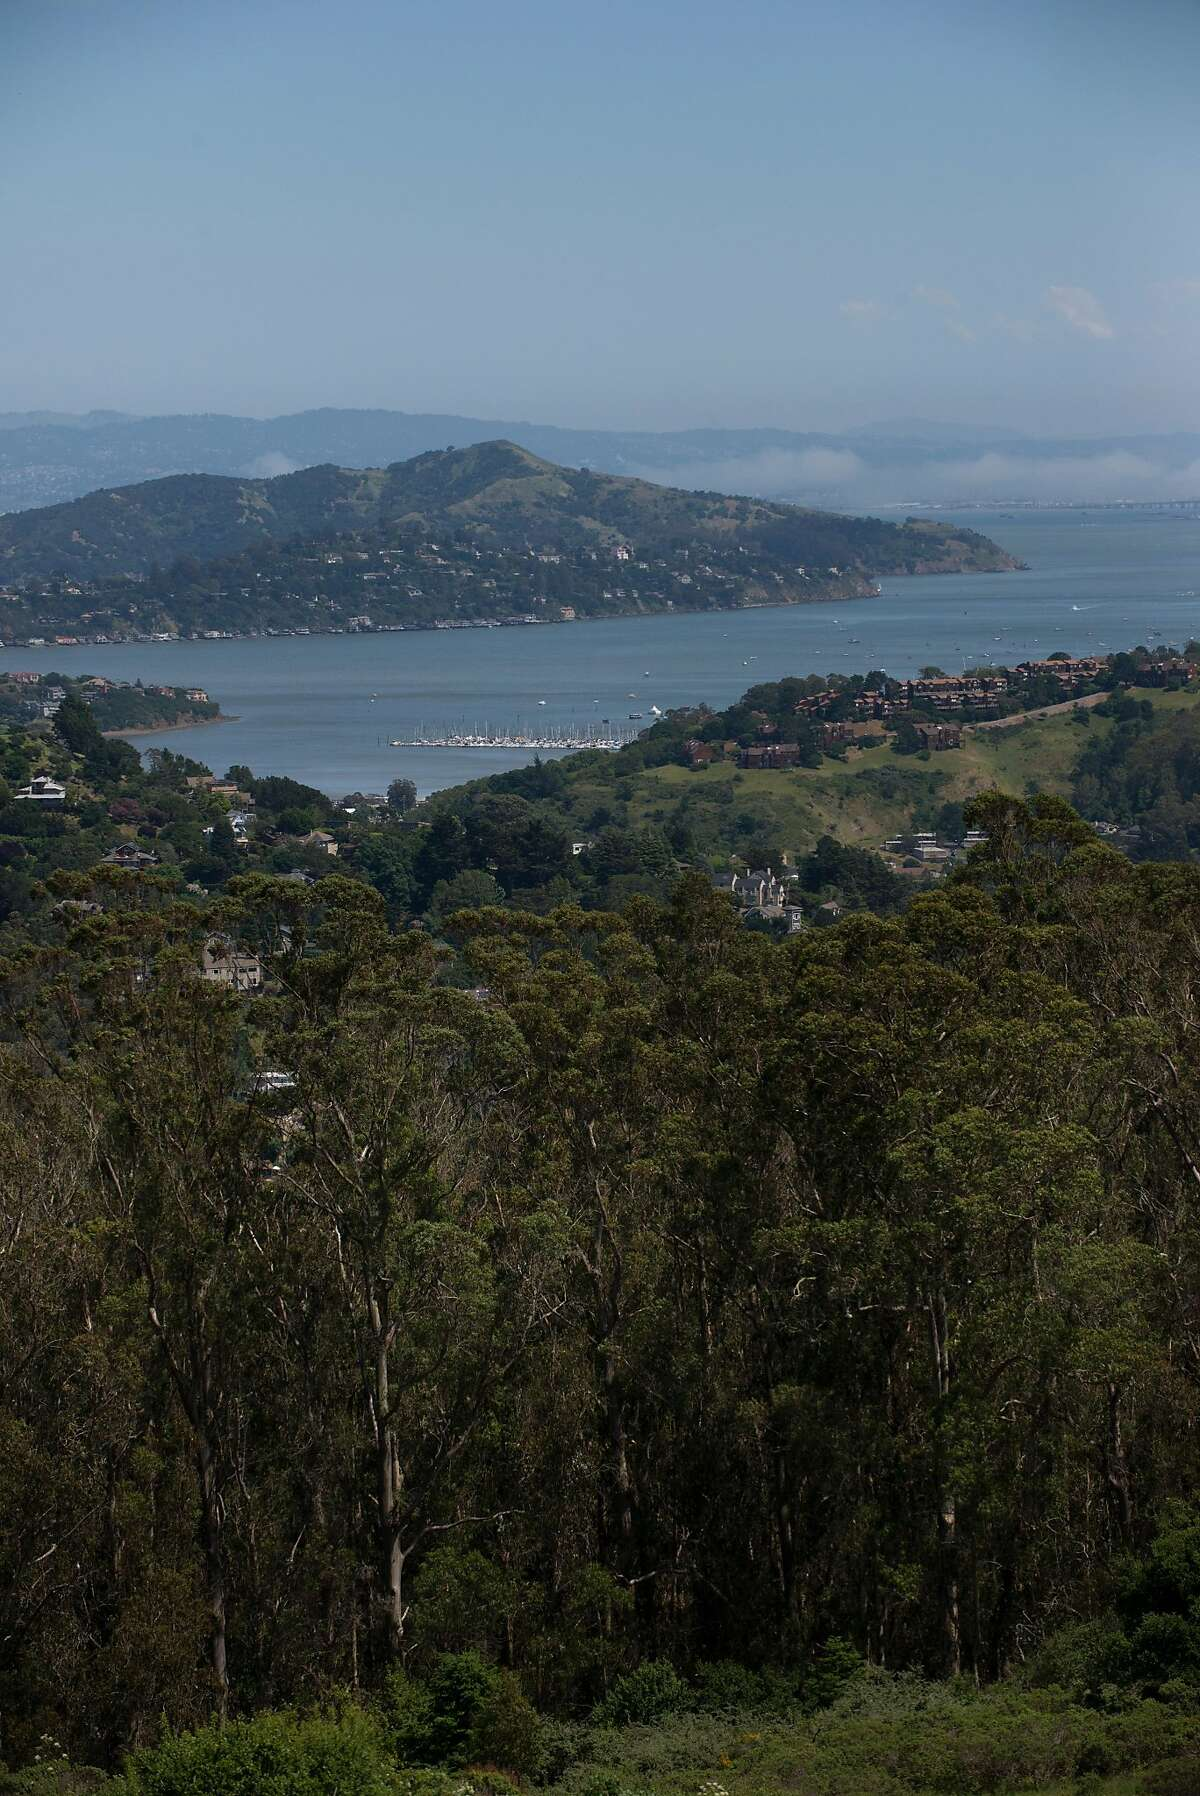 A view of Marin from the Panoramic Highway. May 4, 2017